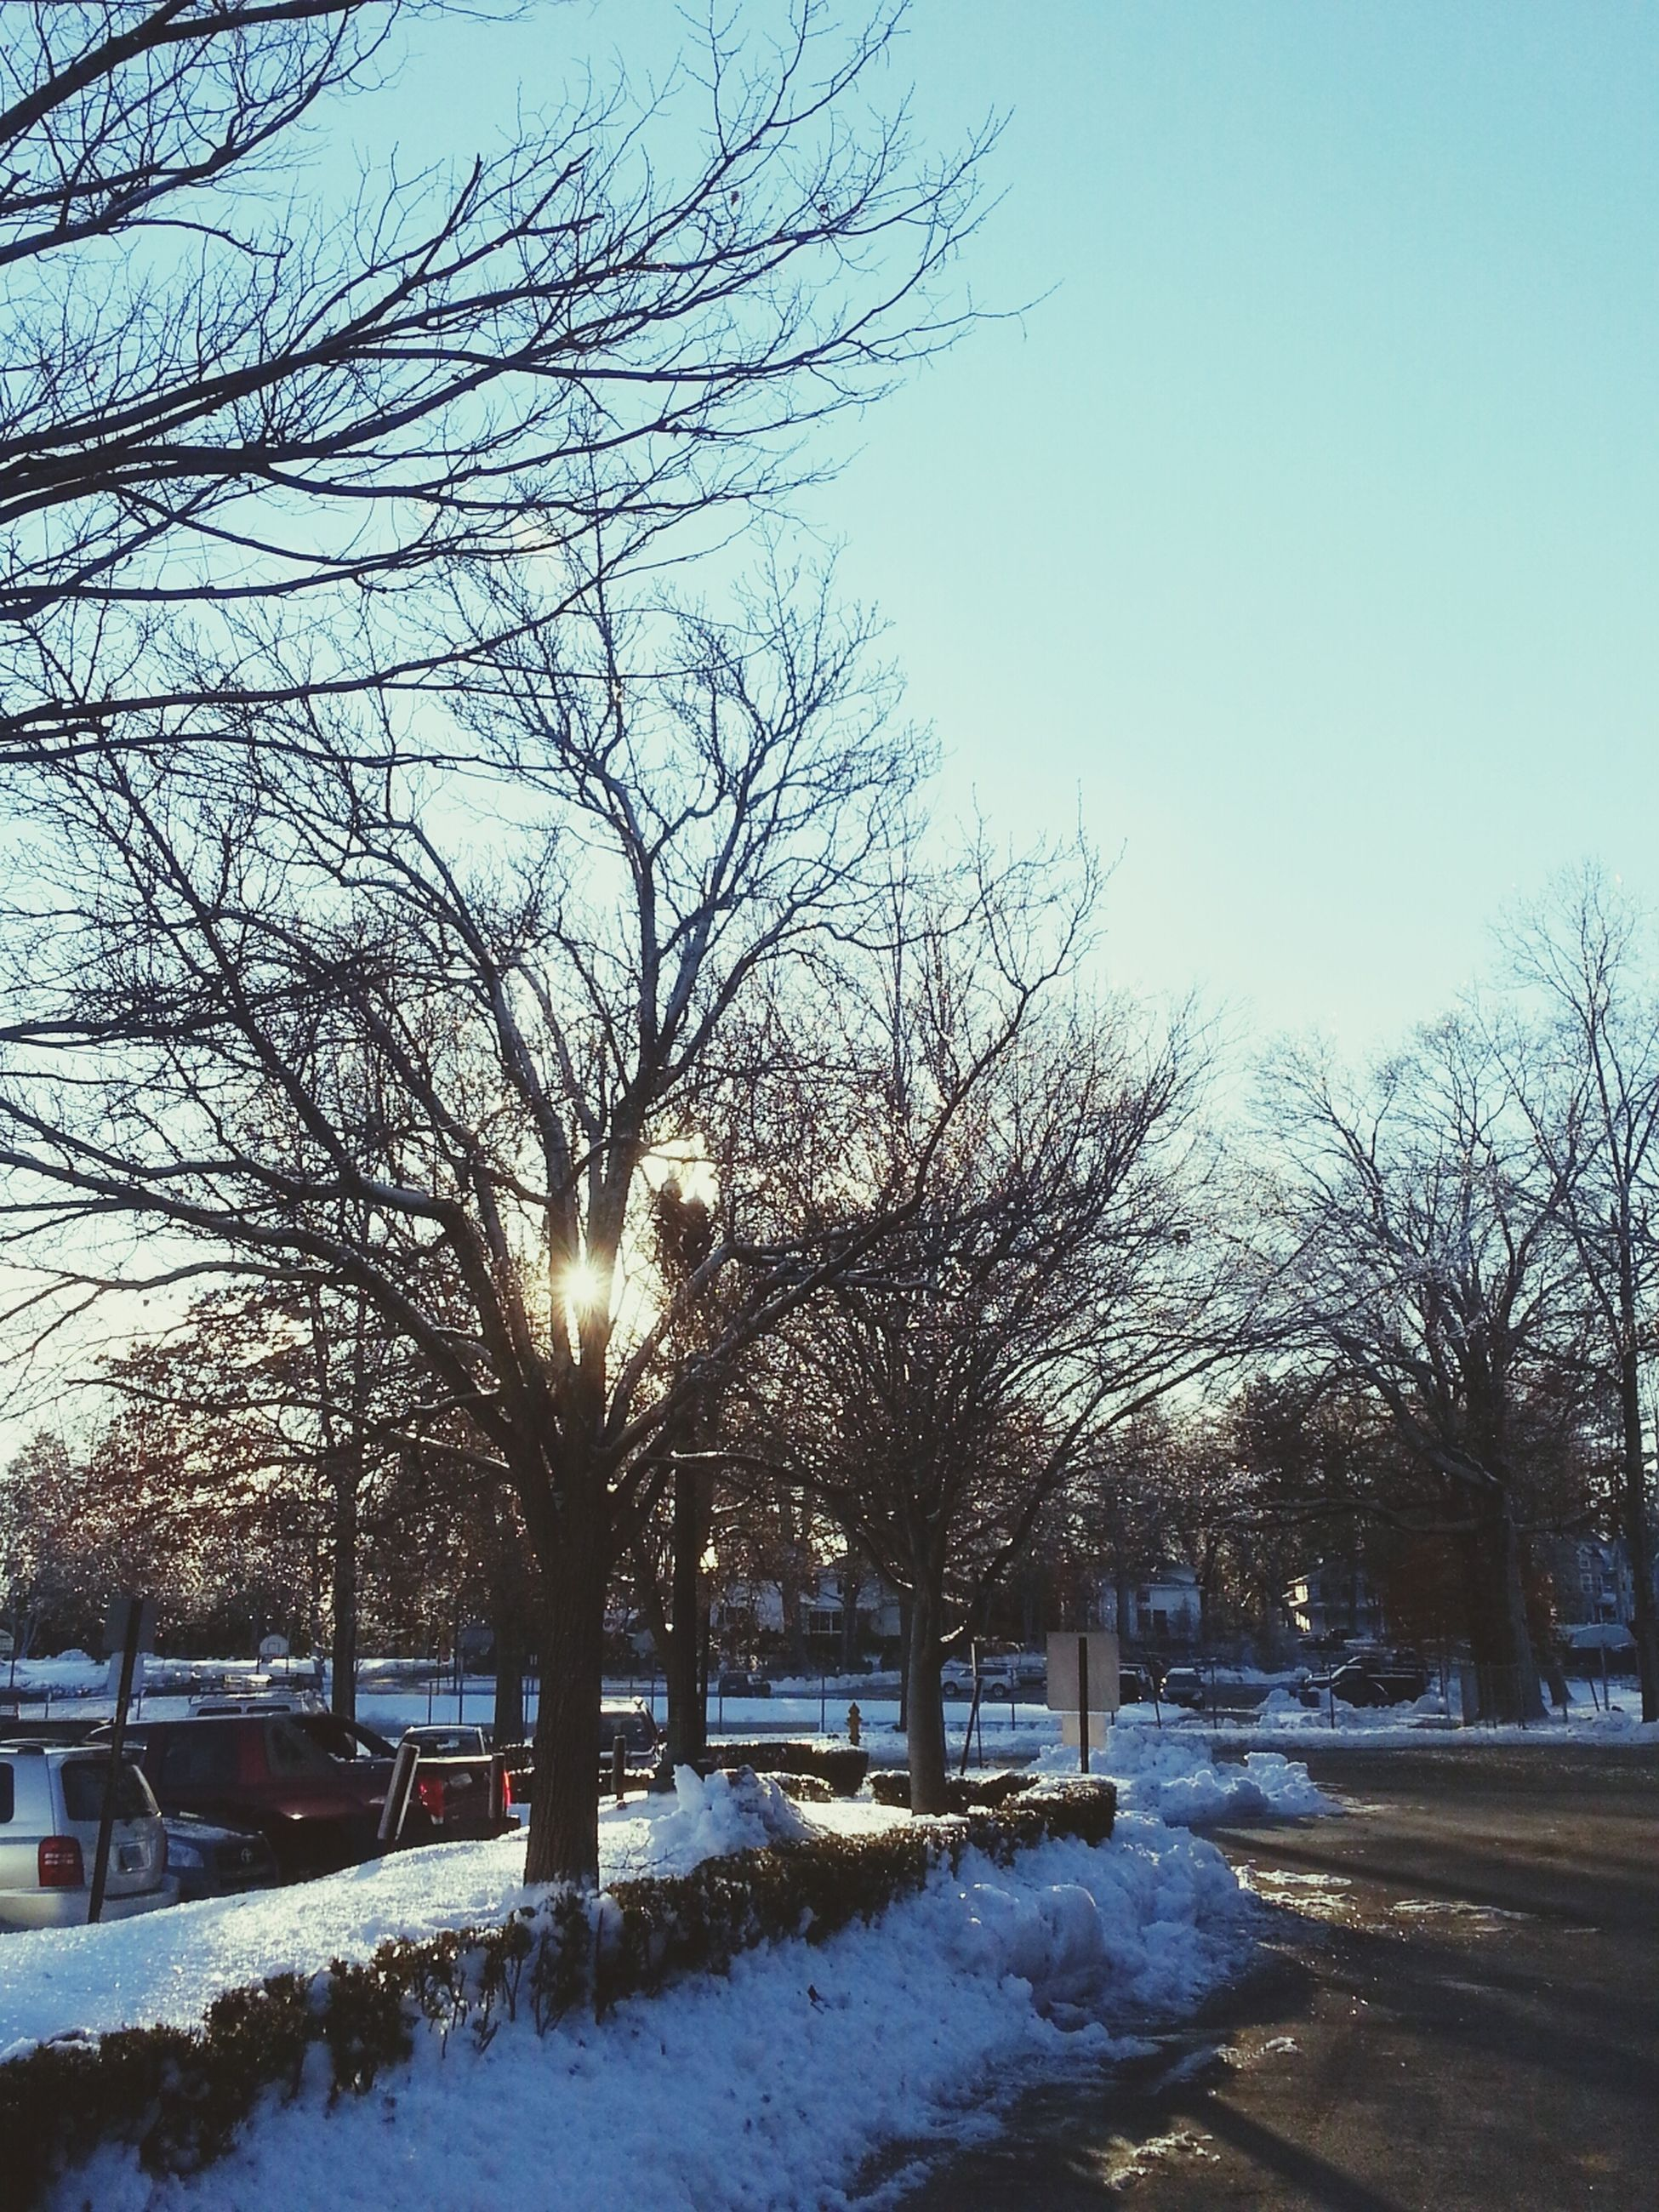 snow, winter, cold temperature, bare tree, tree, season, clear sky, branch, weather, nature, tranquility, covering, tranquil scene, landscape, beauty in nature, scenics, field, frozen, sky, blue